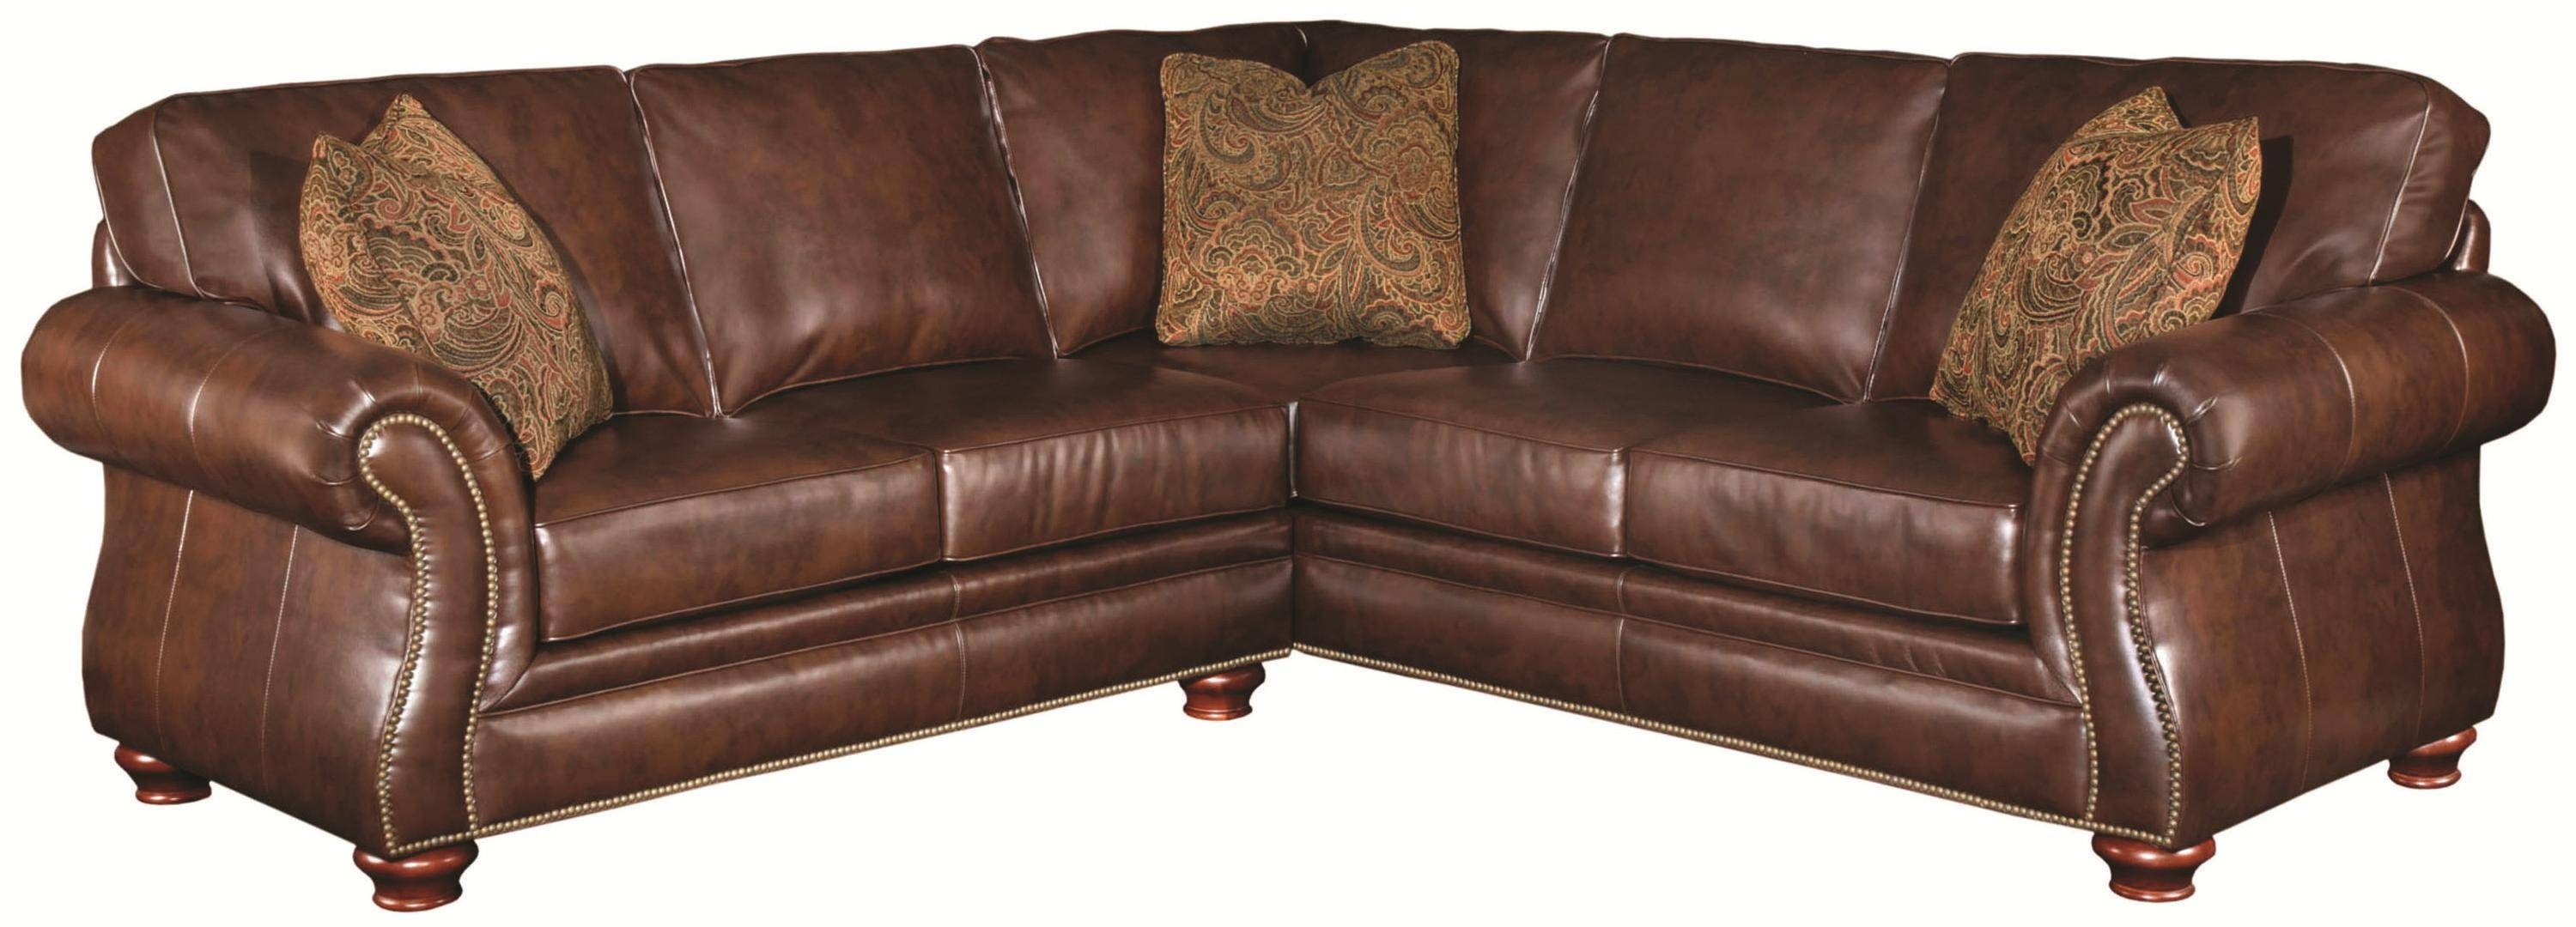 Sofas Center : Beautiful Traditional Sectional Sofas Photos in Traditional Sectional Sofas (Image 12 of 25)